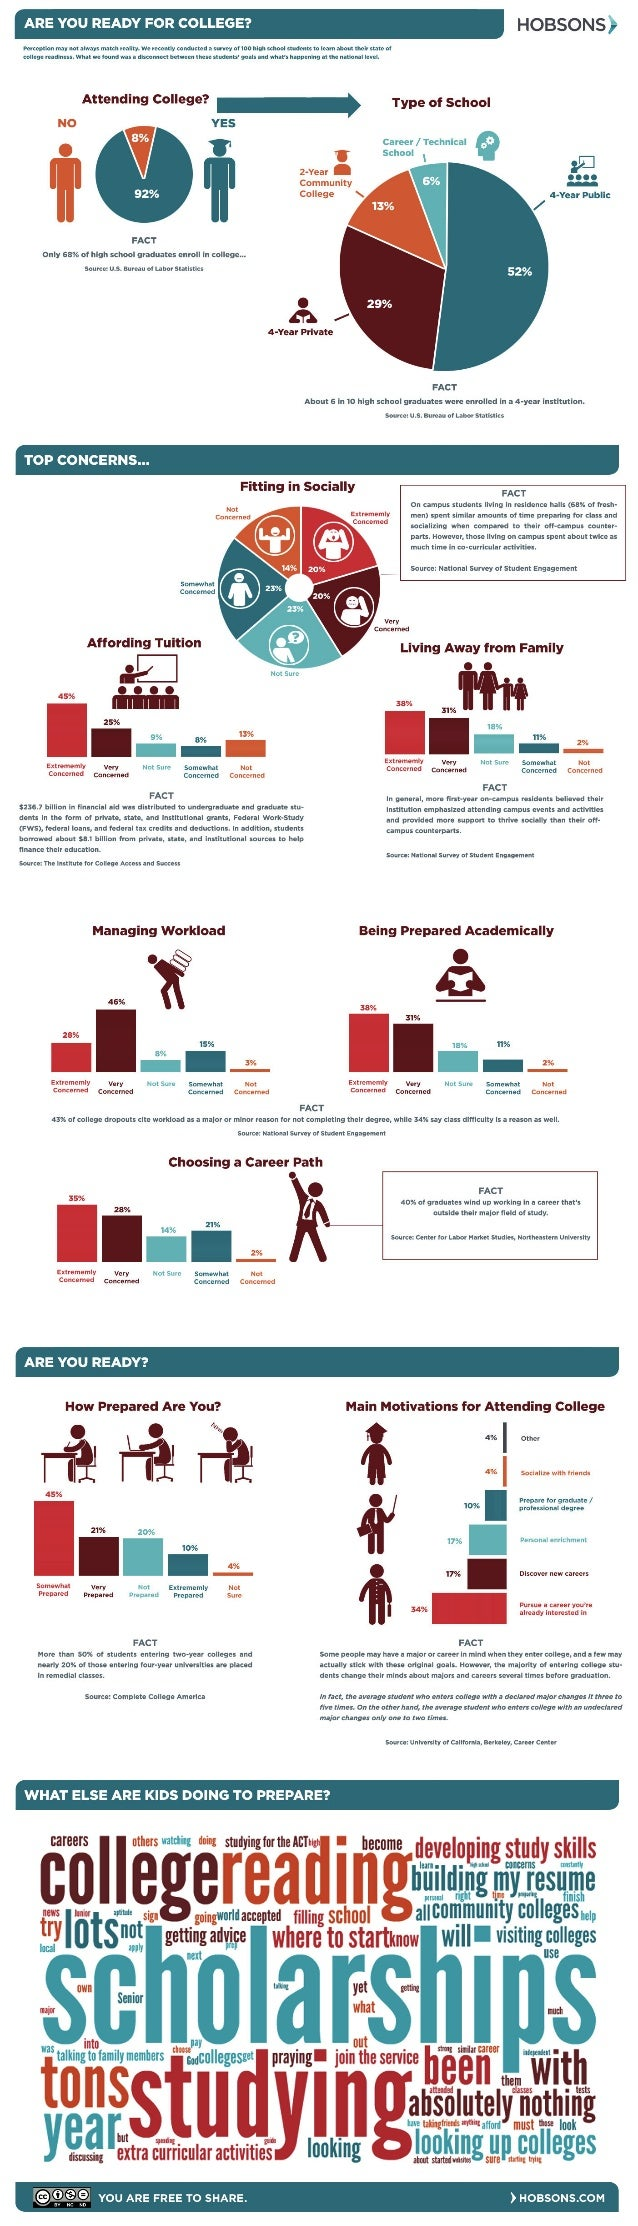 College Readiness Gap Infographic